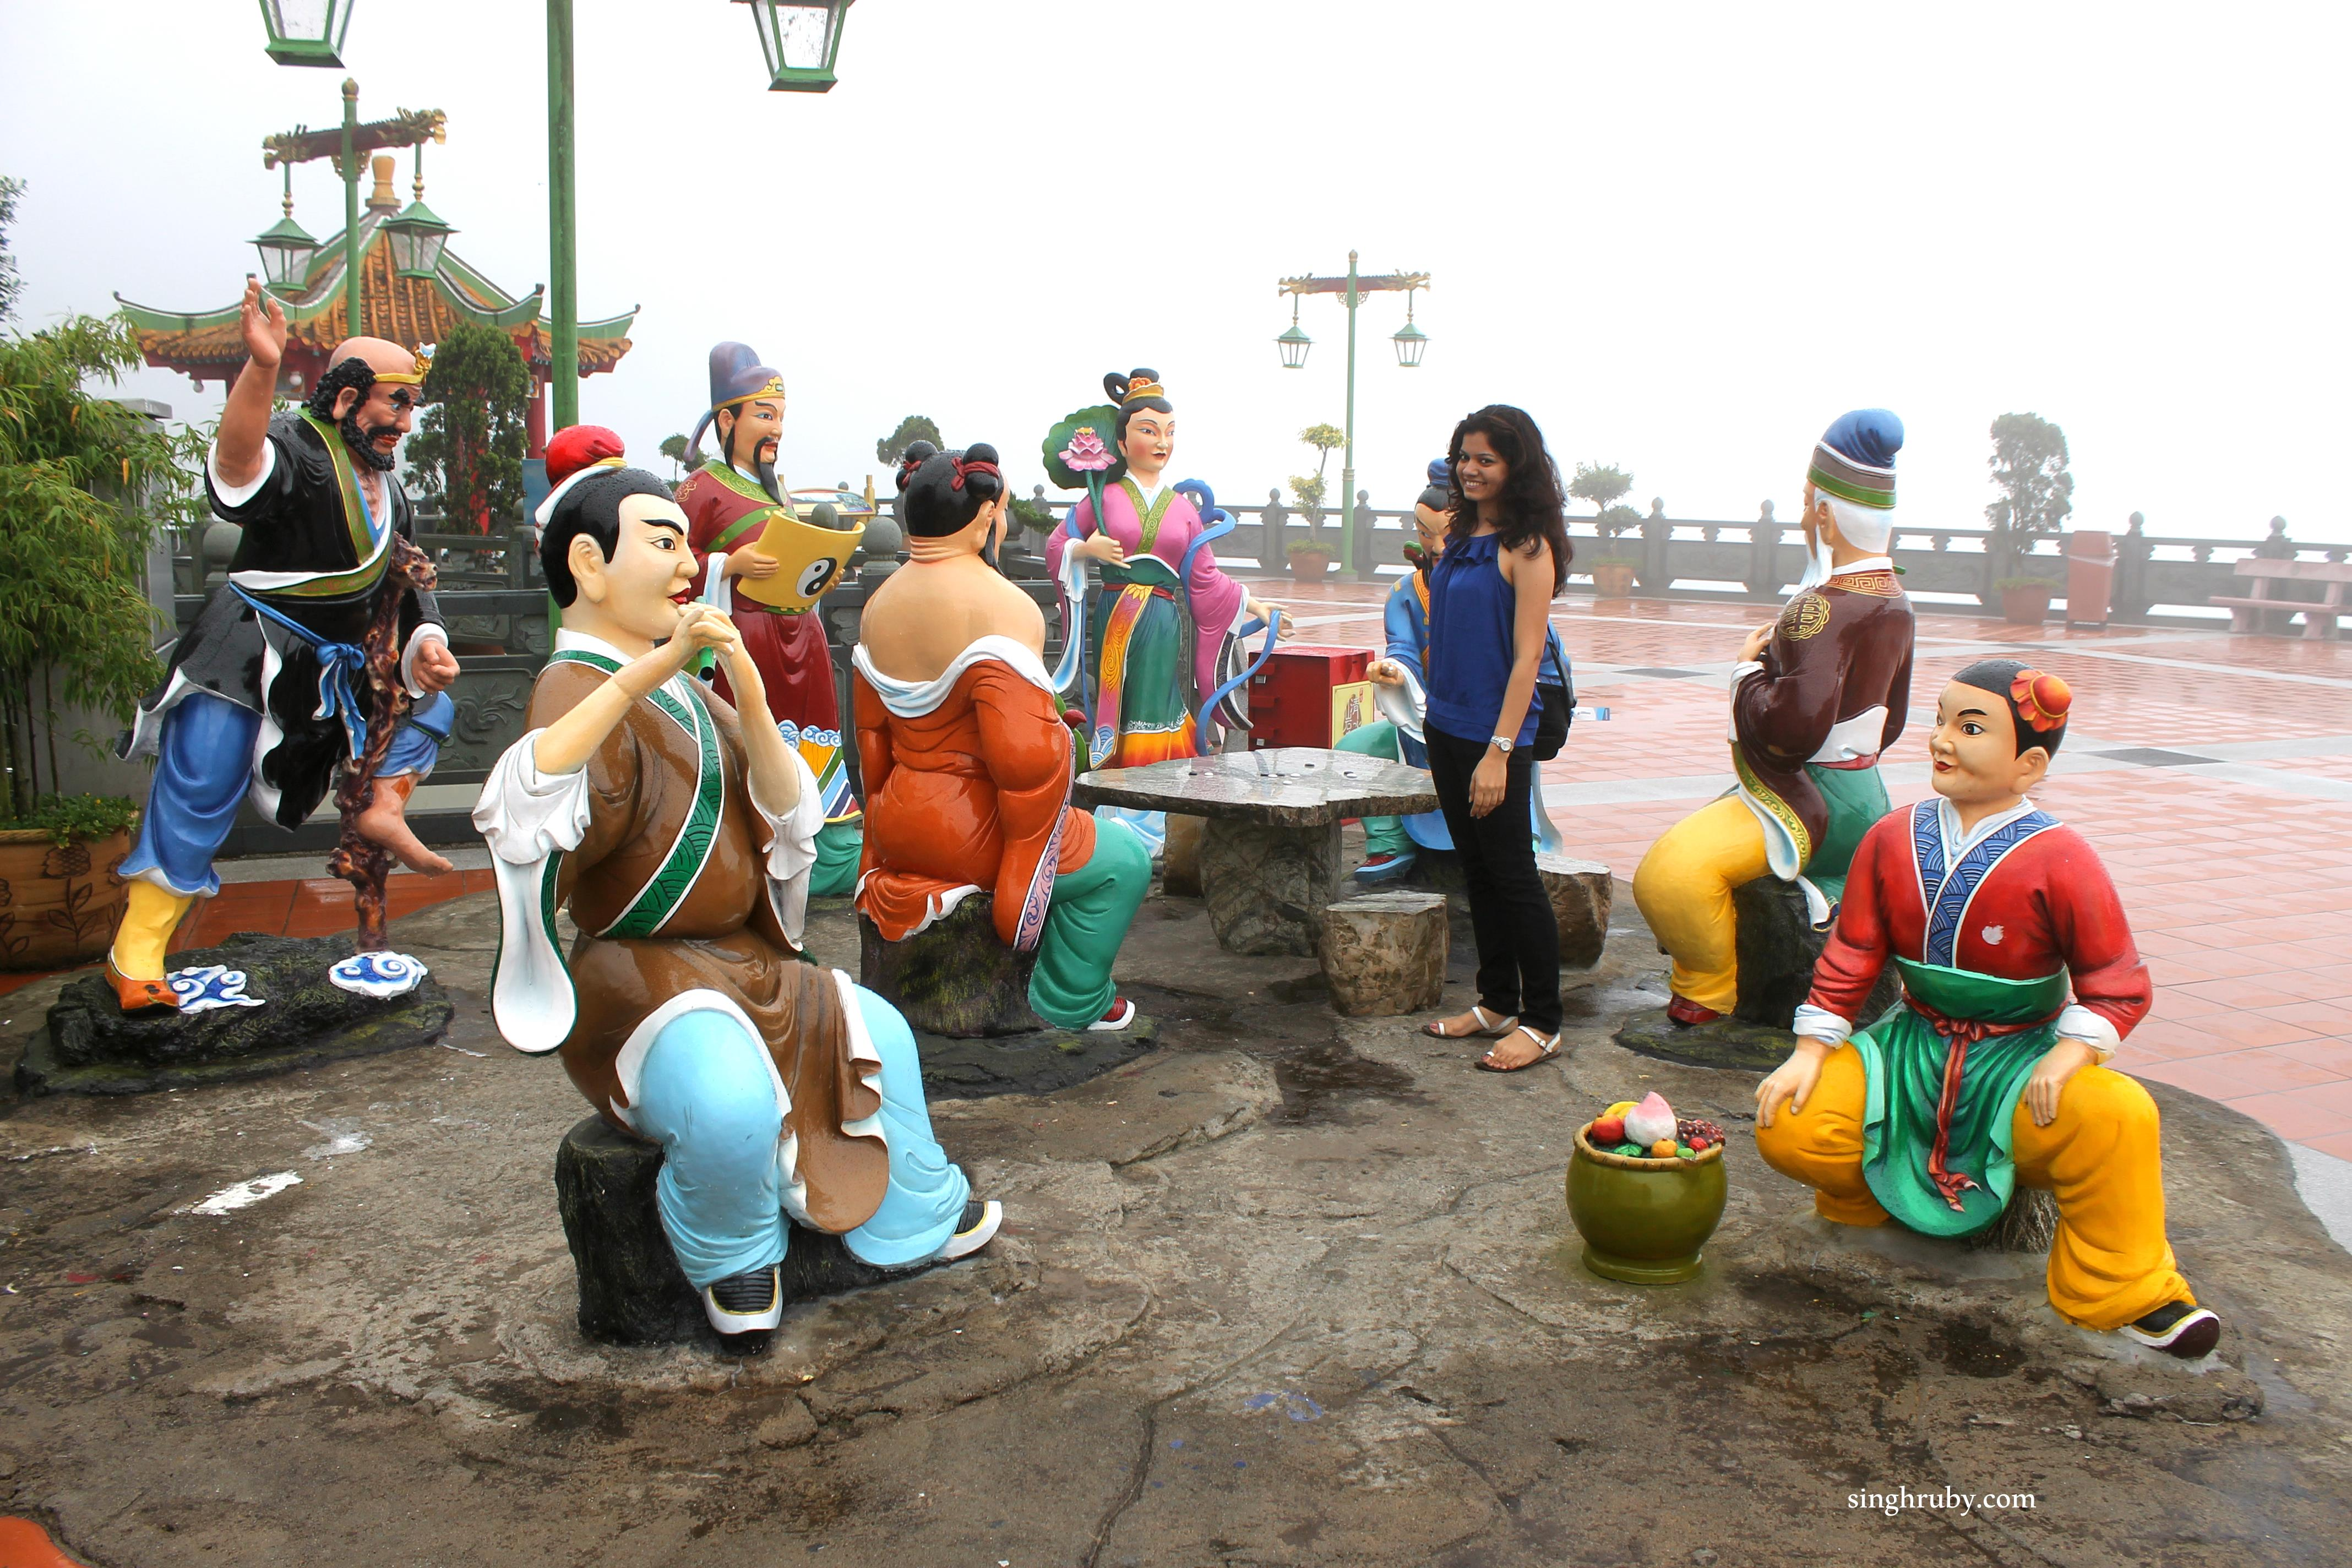 Here is a sneak peek into the happy and colorful statues. I am sure you don't want to see the ones displaying macabre.